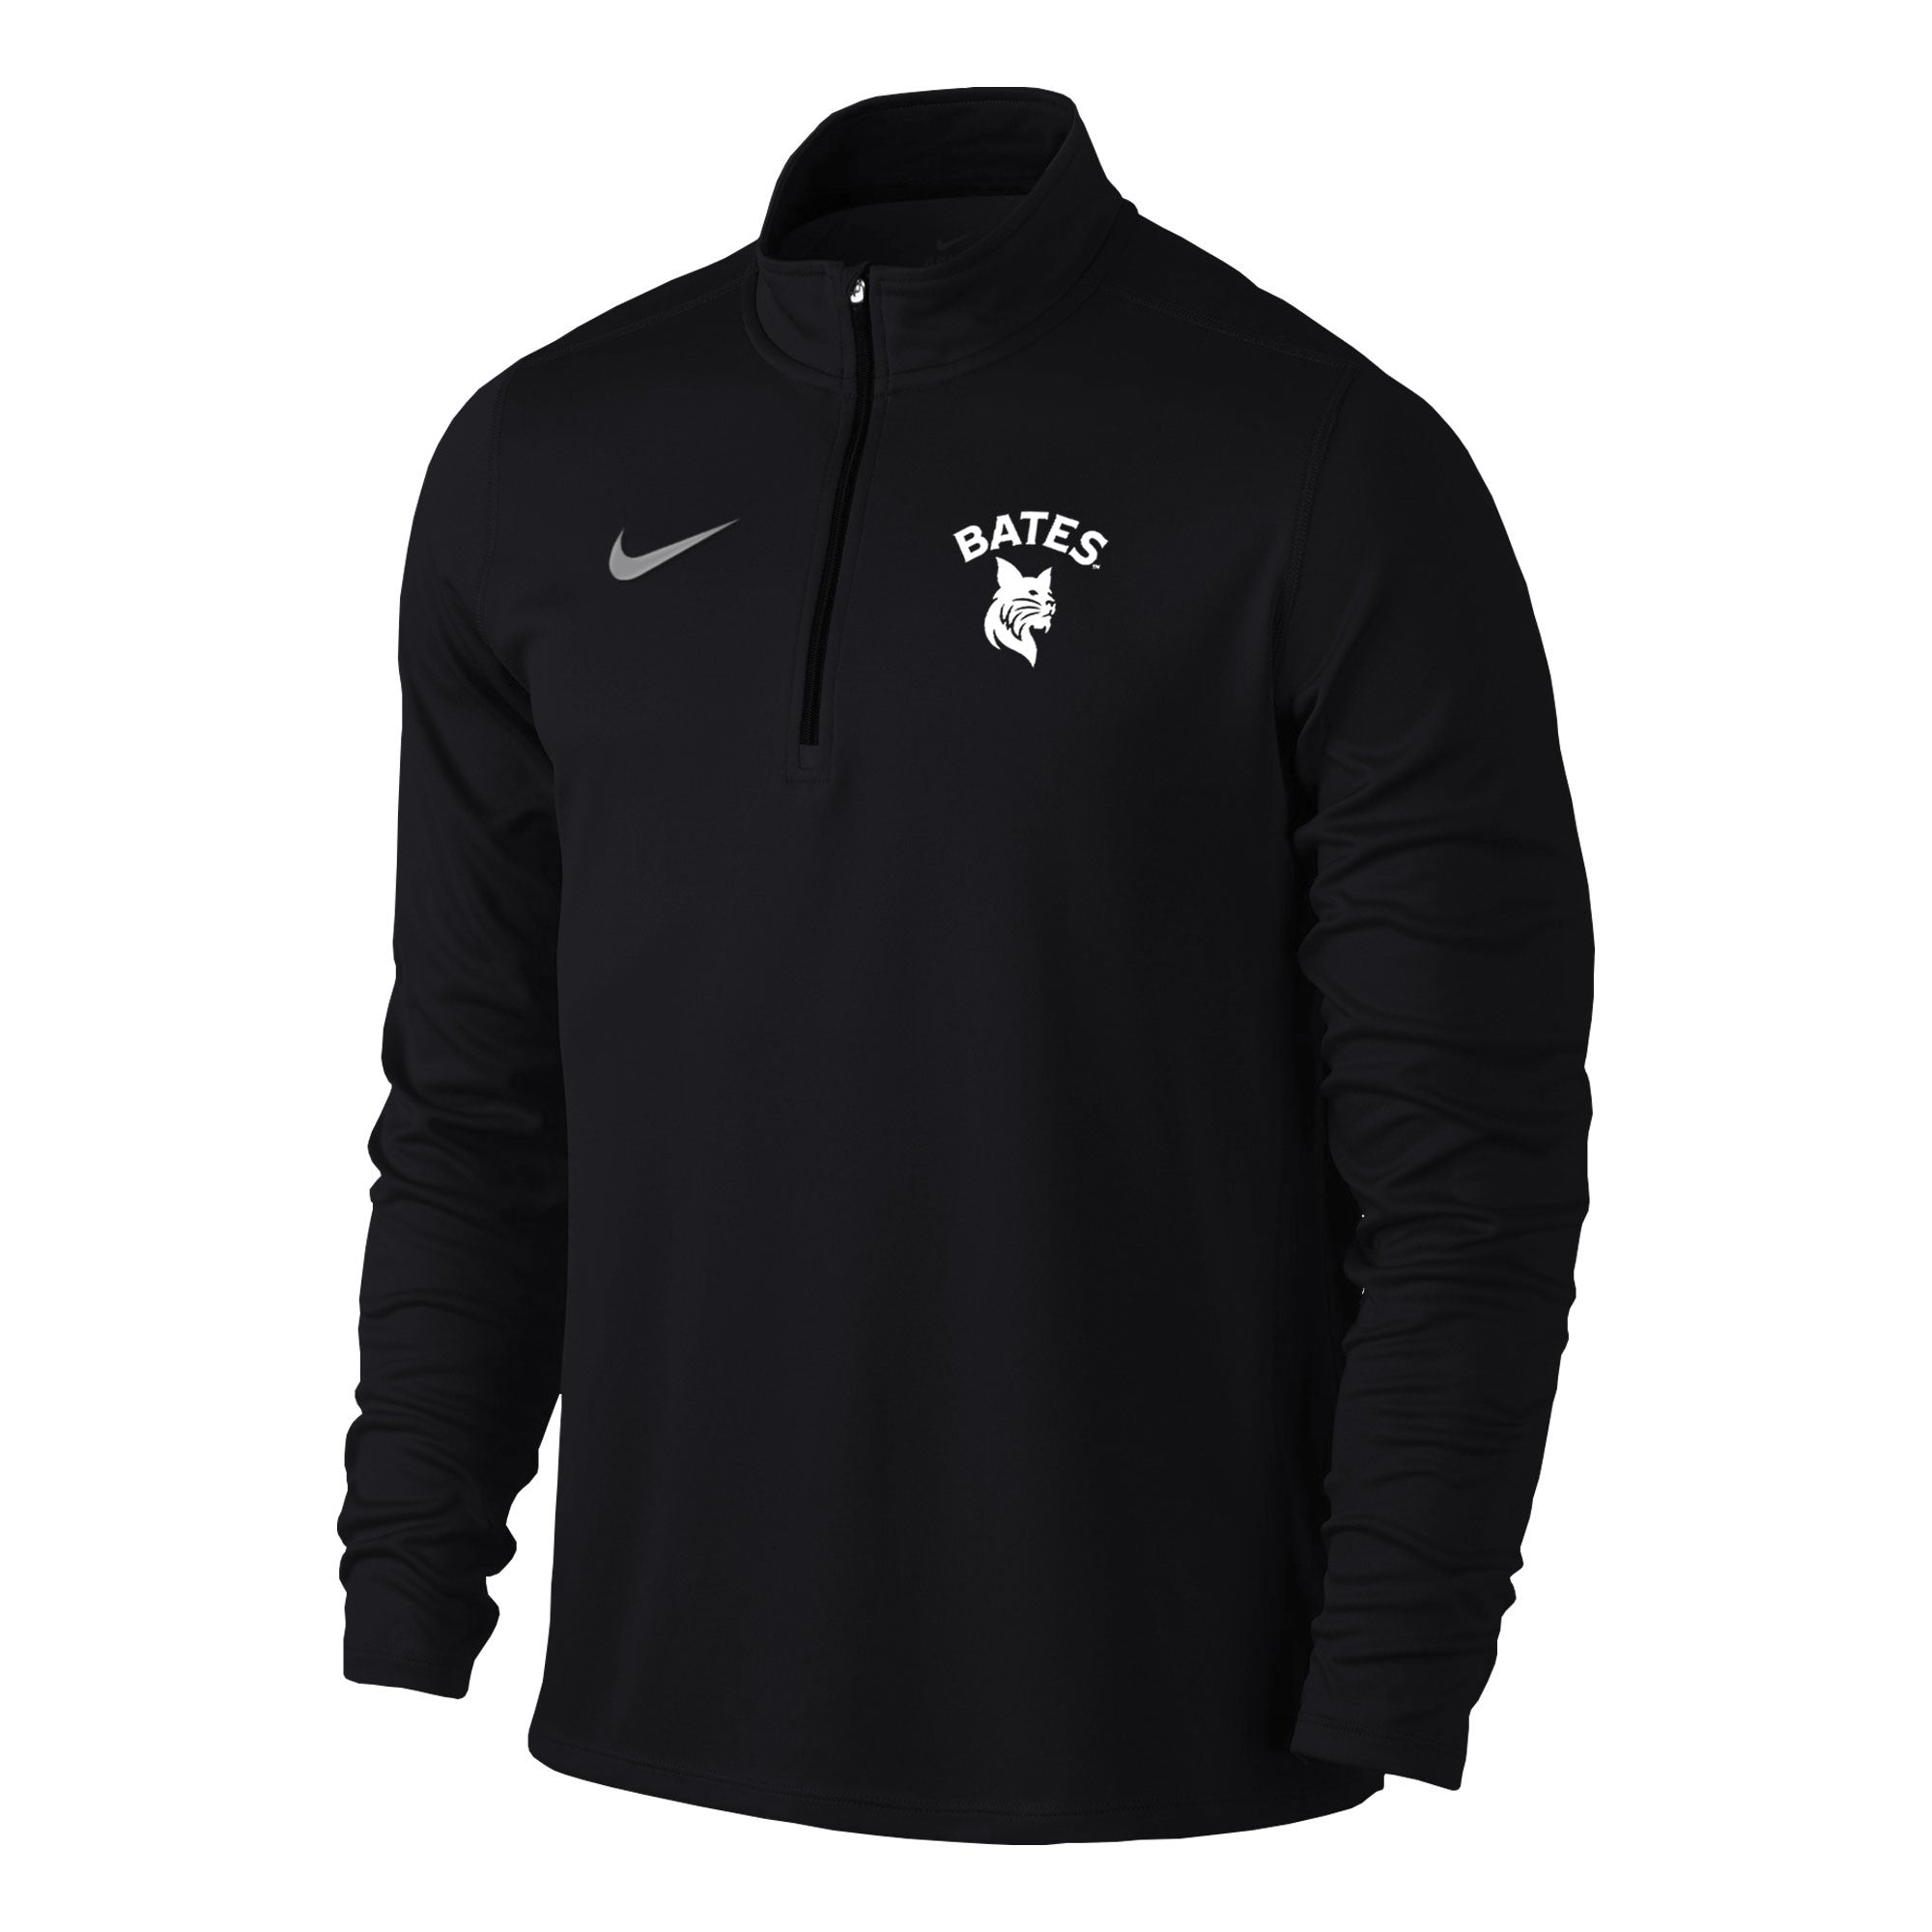 54c1623e42 Nike Solid Element Pull-Over - Size Small Only | Bates College Store